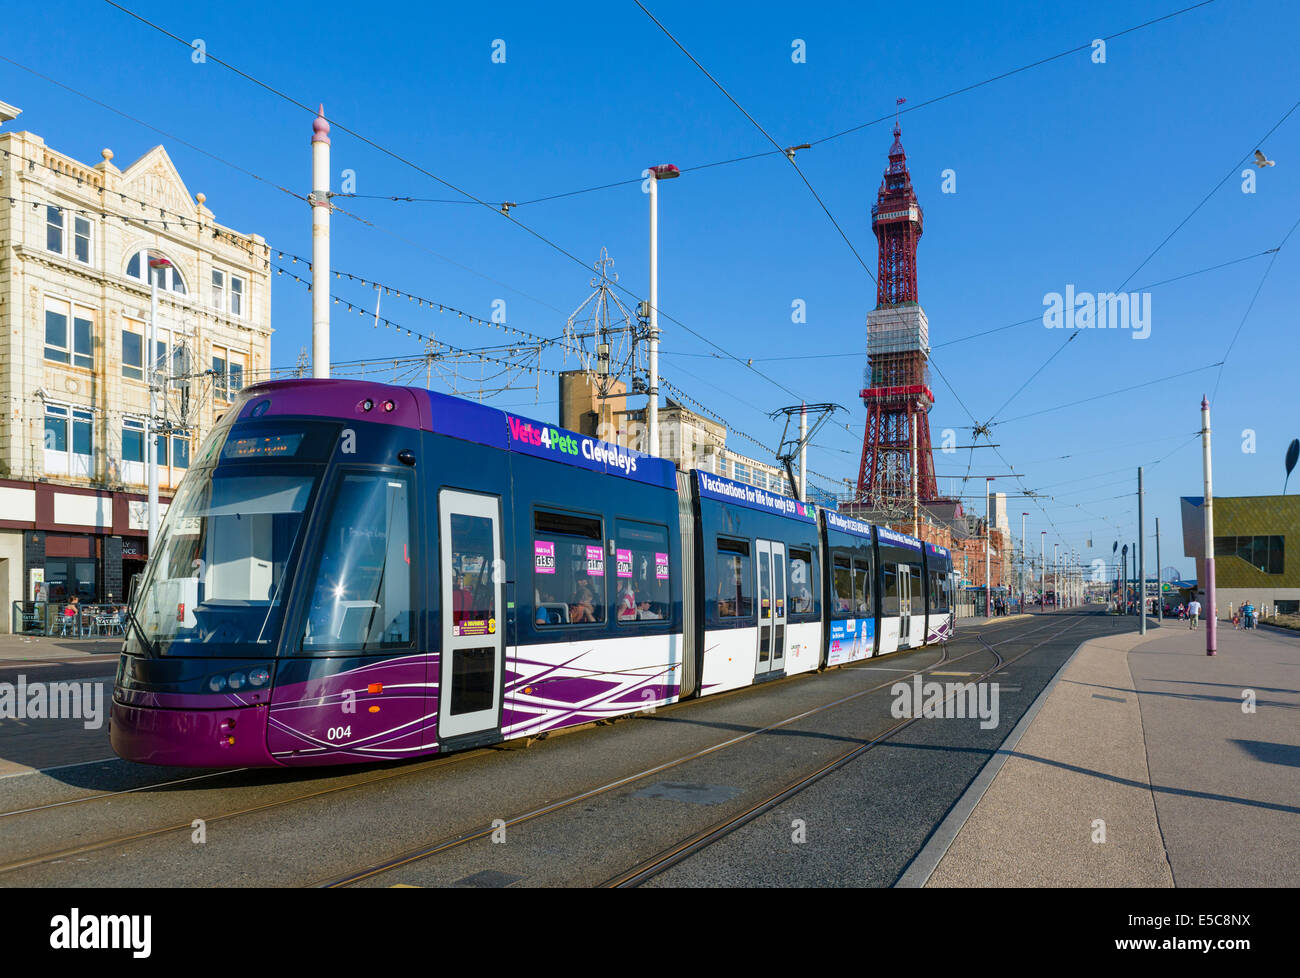 Tram on the promenade in front of Blackpool Tower, The Golden Mile, Blackpool, Lancashire, UK - Stock Image